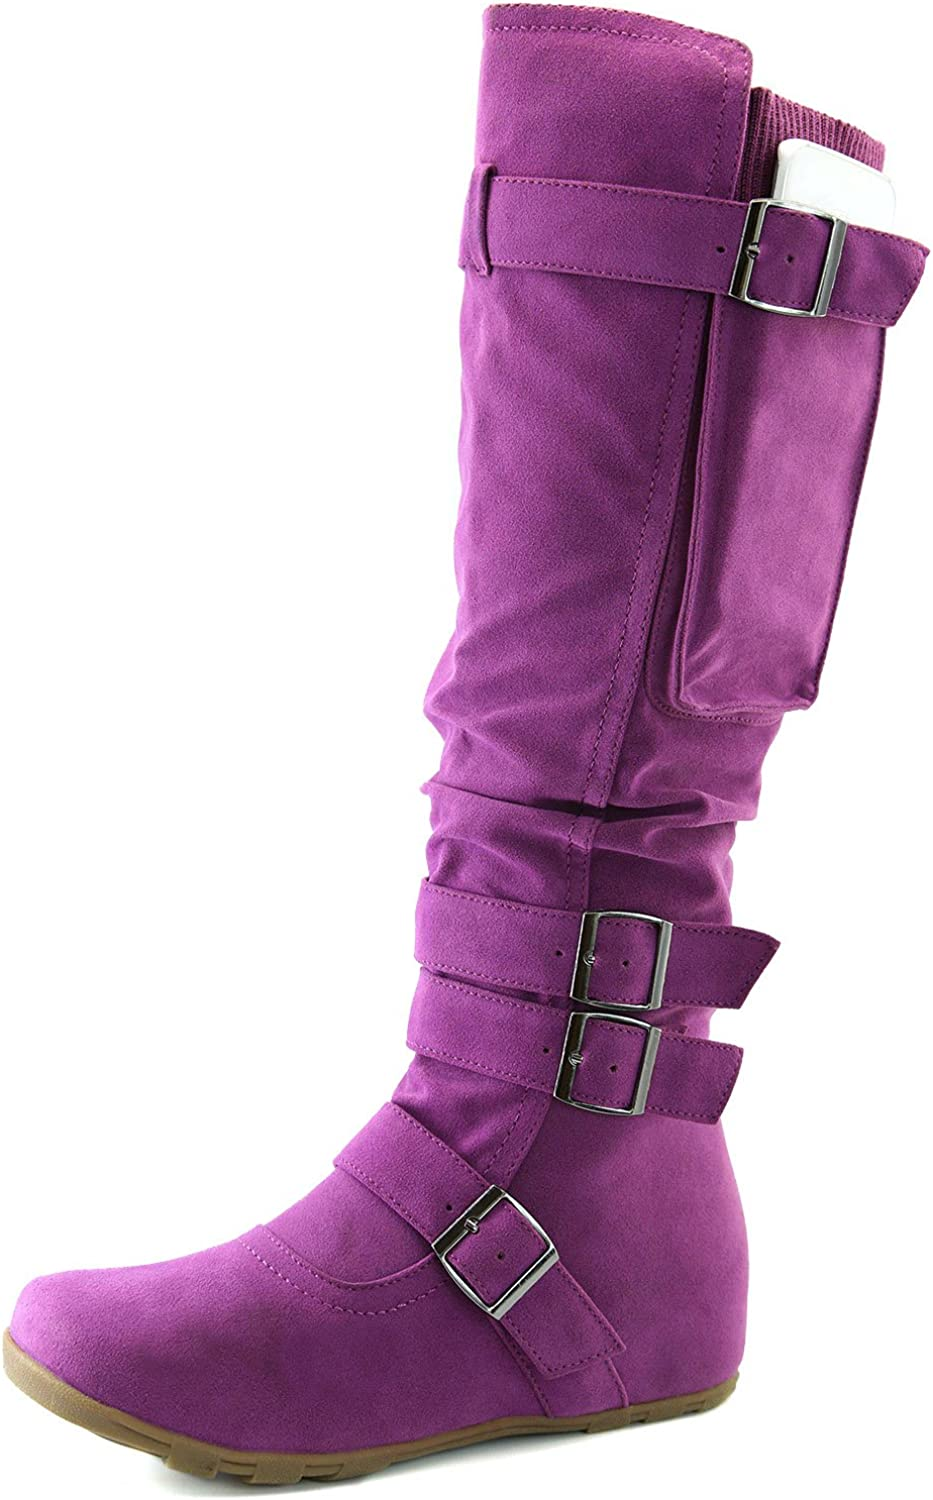 DailyShoes Women's Mid Knee High Strappy Slouch Boots